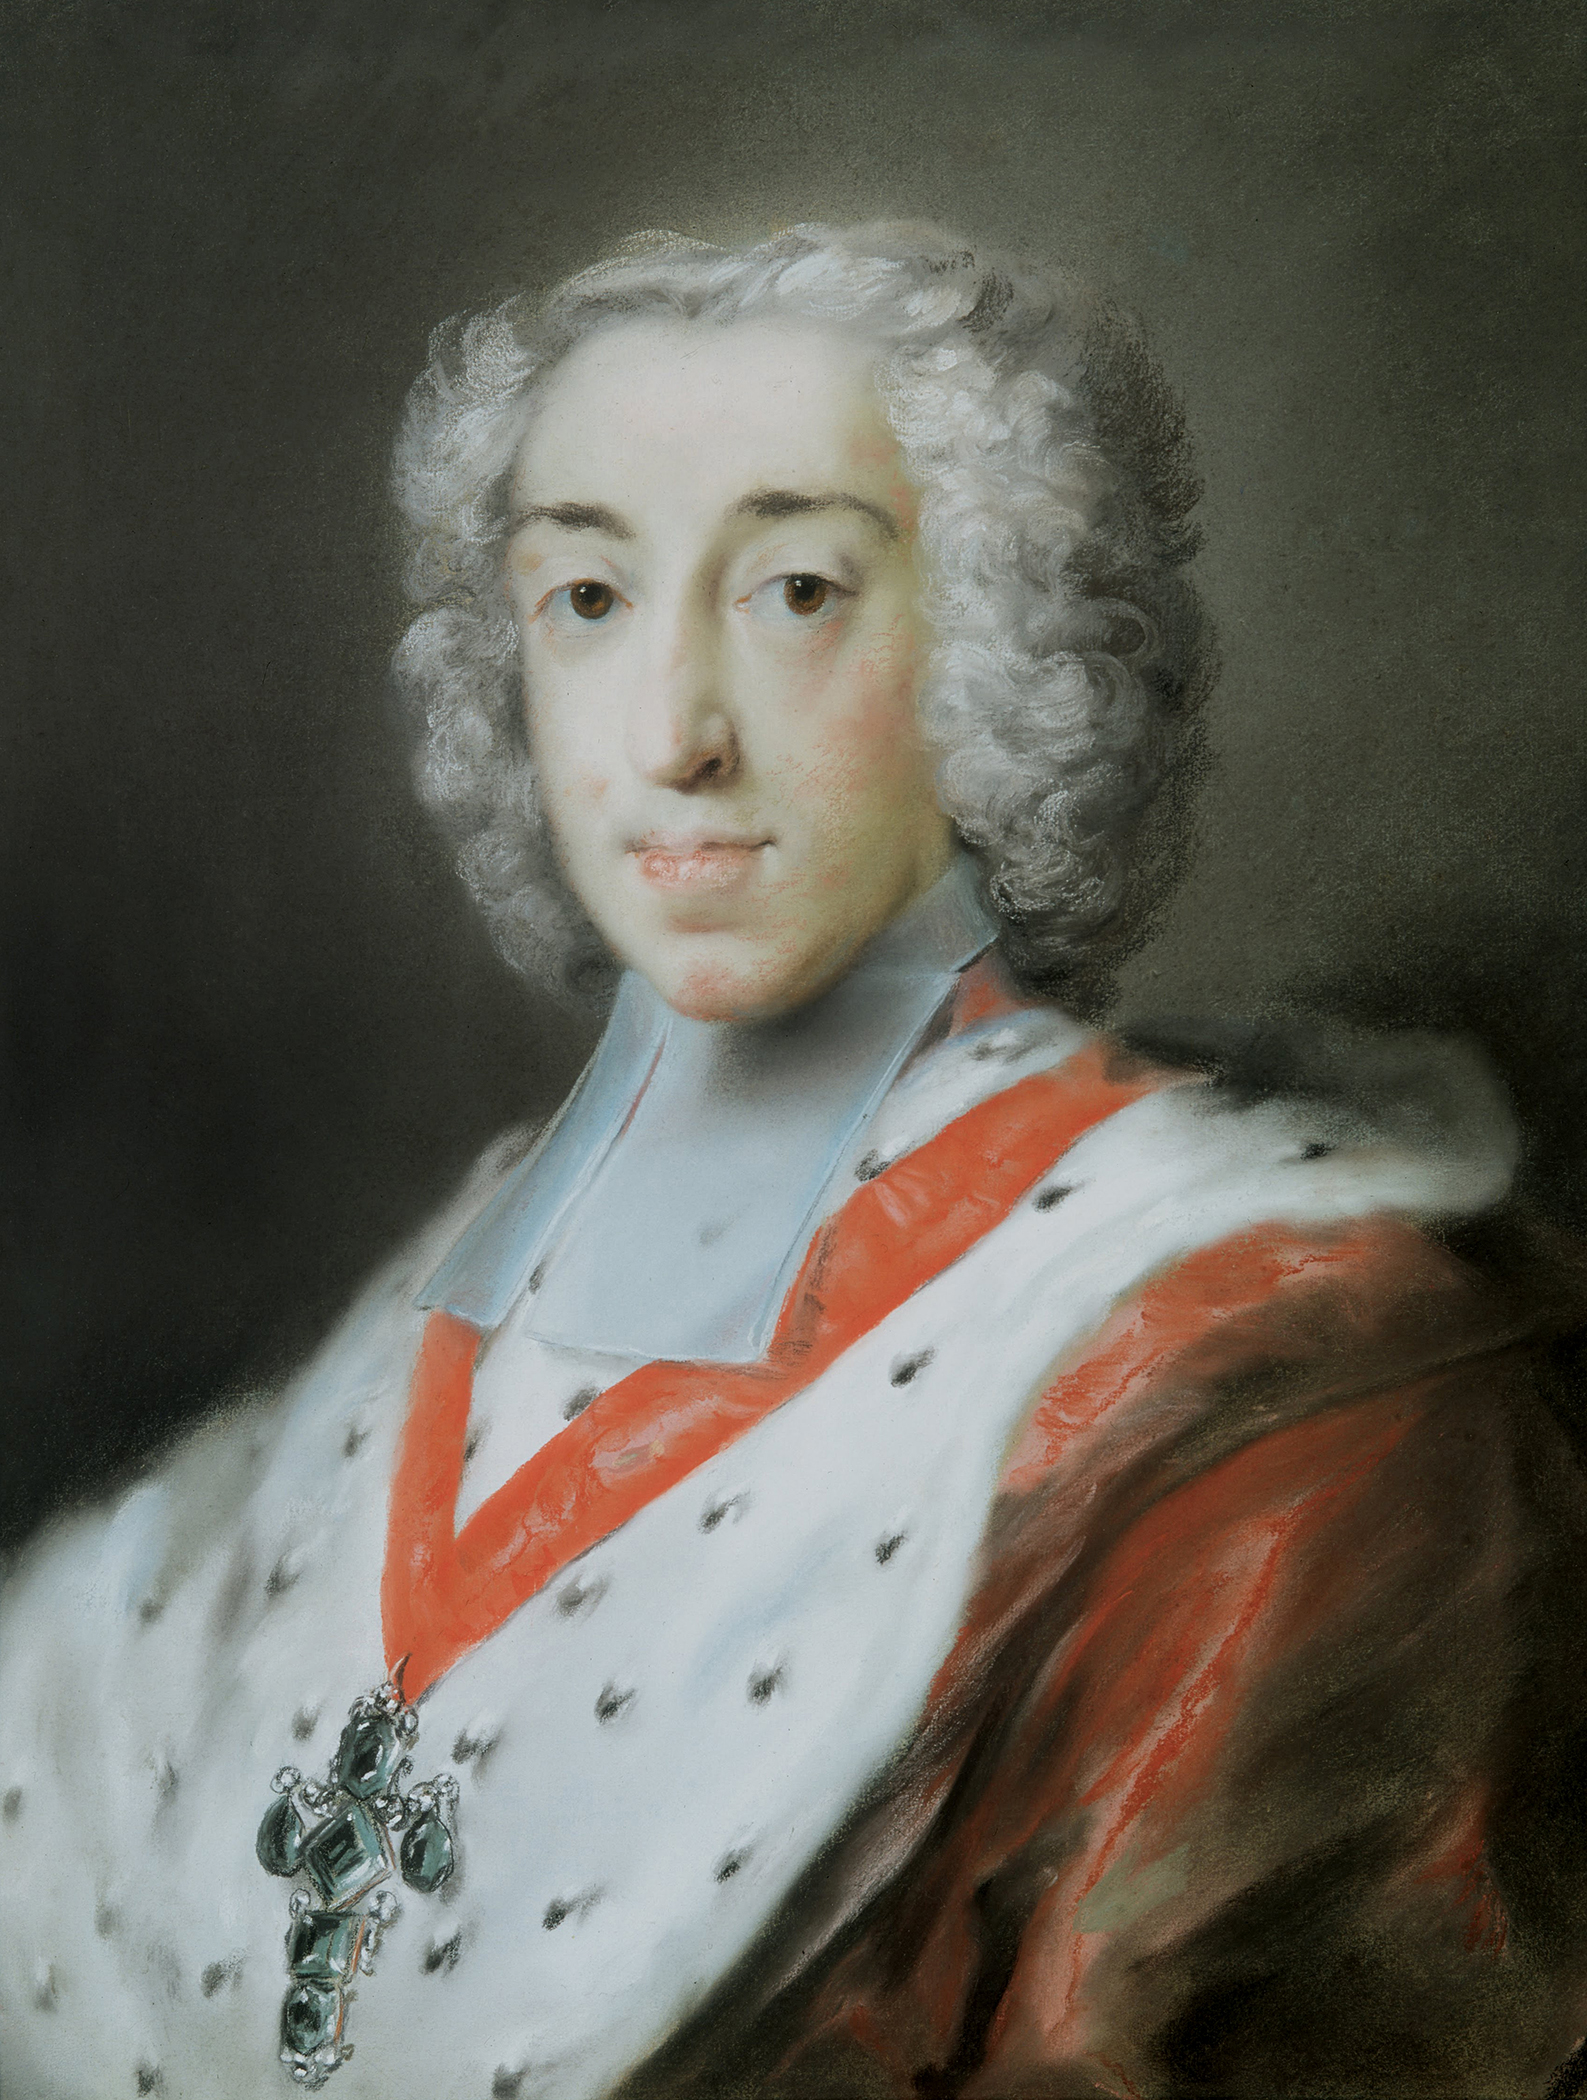 Portrait of Clemens August of Bavaria (1700-1761), Prince-Bishop of Regensburg (1716-1719), Prince-Bishop of Paderborn (1719-1761), Prince-Bishop of Münster and Burgrave of Stromberg (1719-1761), Prince-Archbishop-Elector of Cologne and Duke of Westphalia (1723-1761), Prince-Bishop of Hildesheim (1723-1761), Prince-Bishop of Osnabrück (1728), Grand Master of the Teutonic Order (1732), 1727 | Portraits of Kings